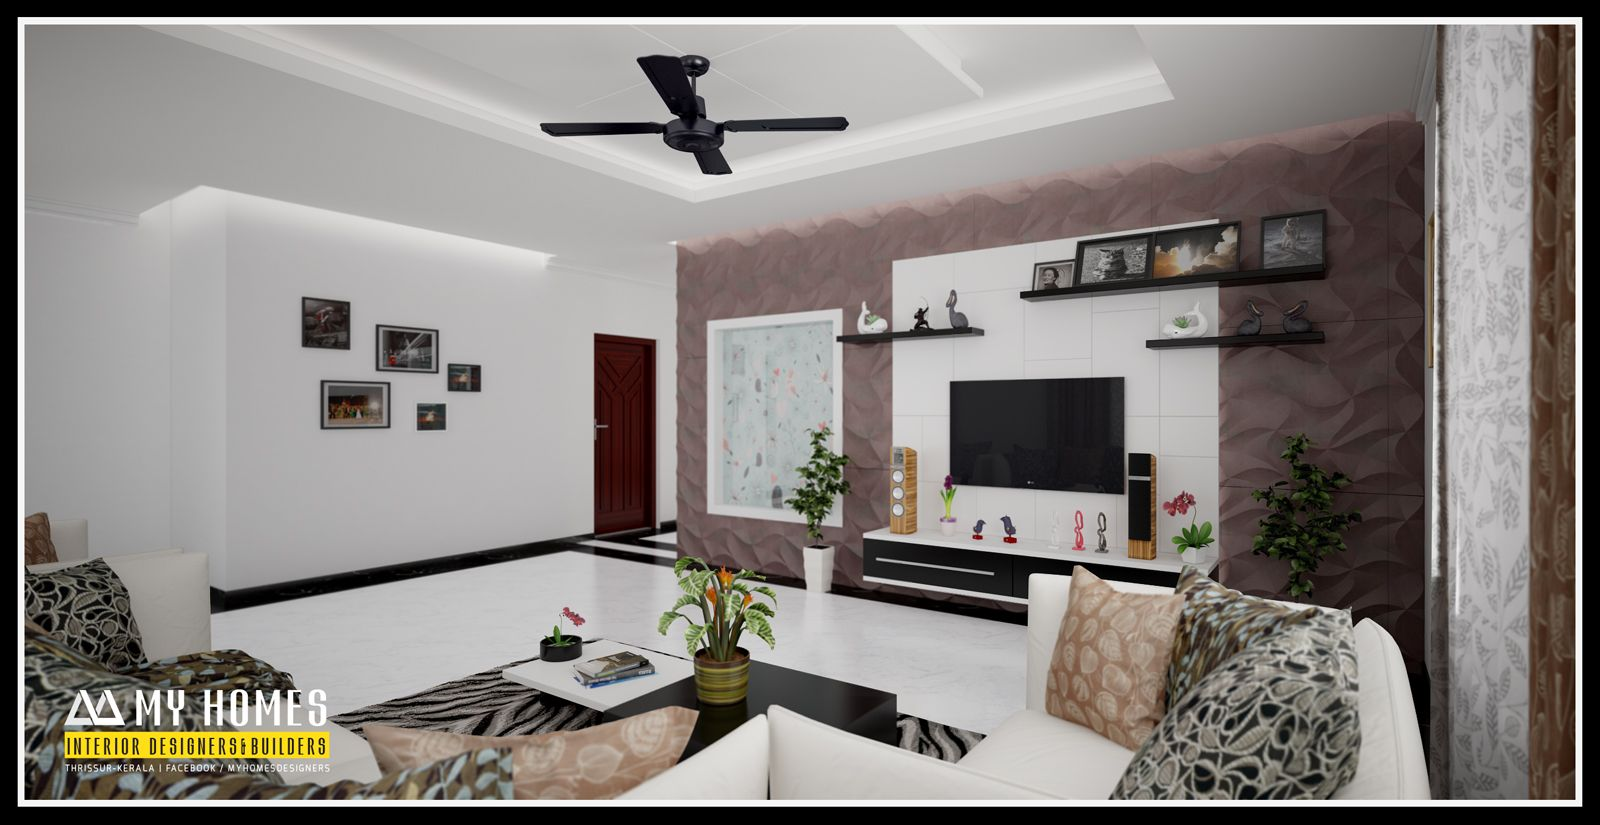 Kerala Living Room Designs Present Trendy For Creating An Elegant Every Want